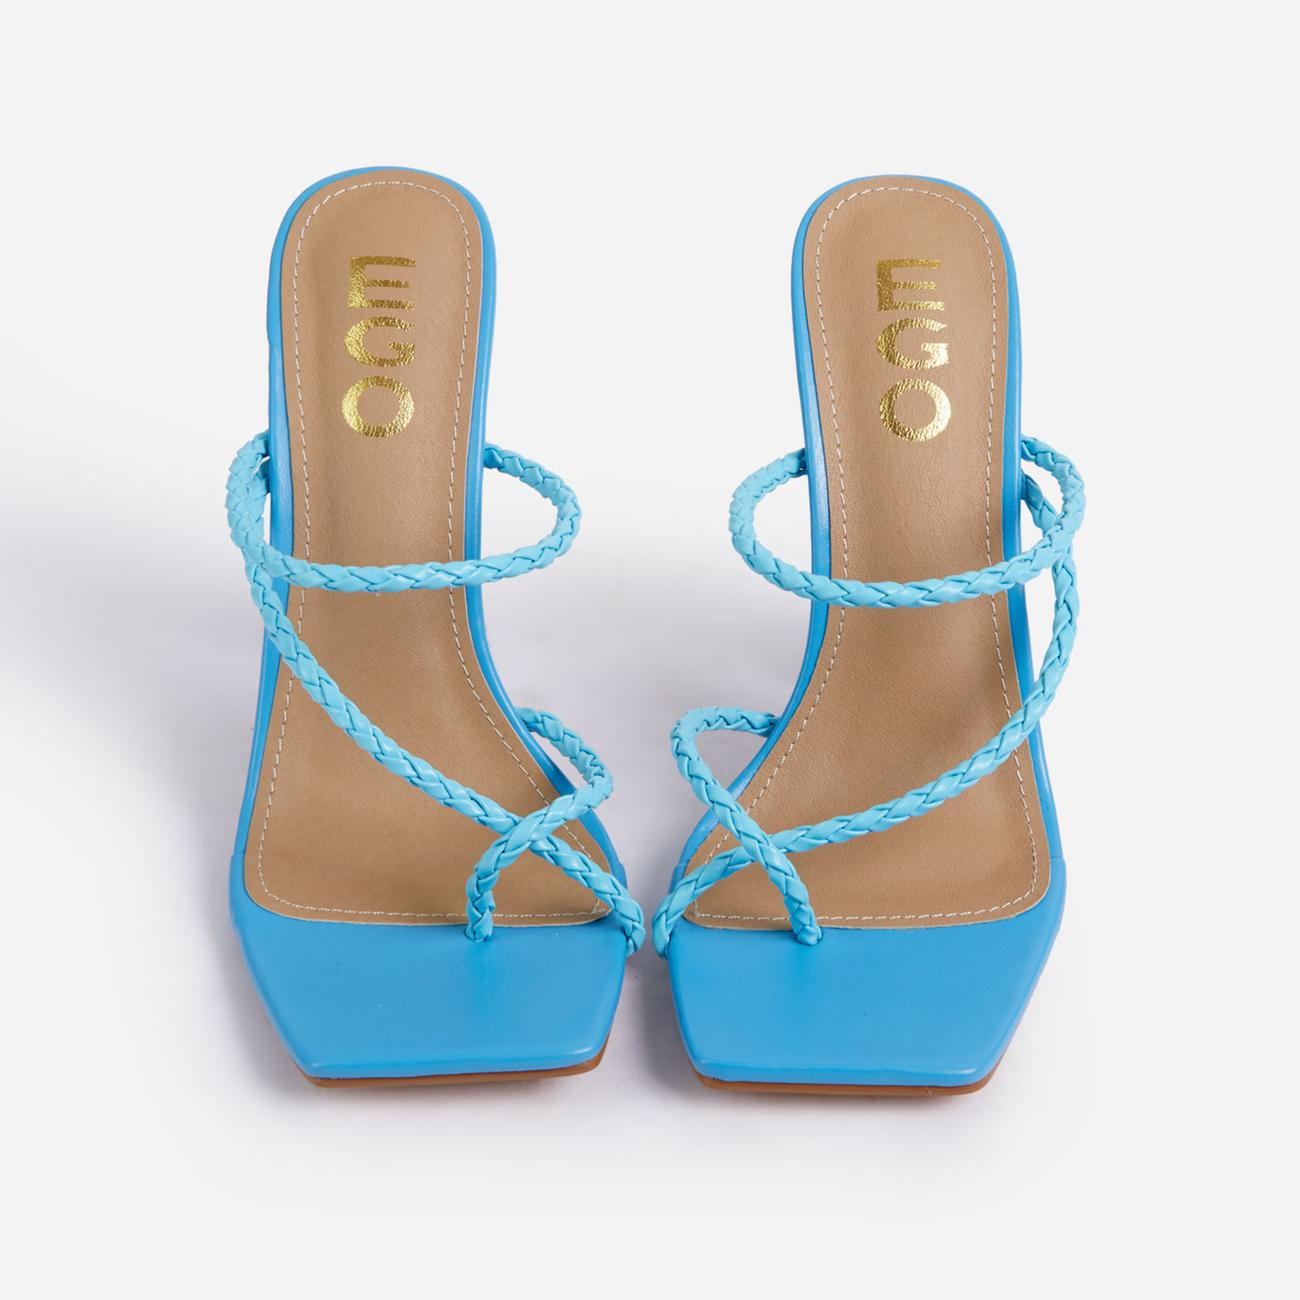 Tahiti Strappy Plait Detail Square Toe Heel Mule In Blue Faux Leather Image 4